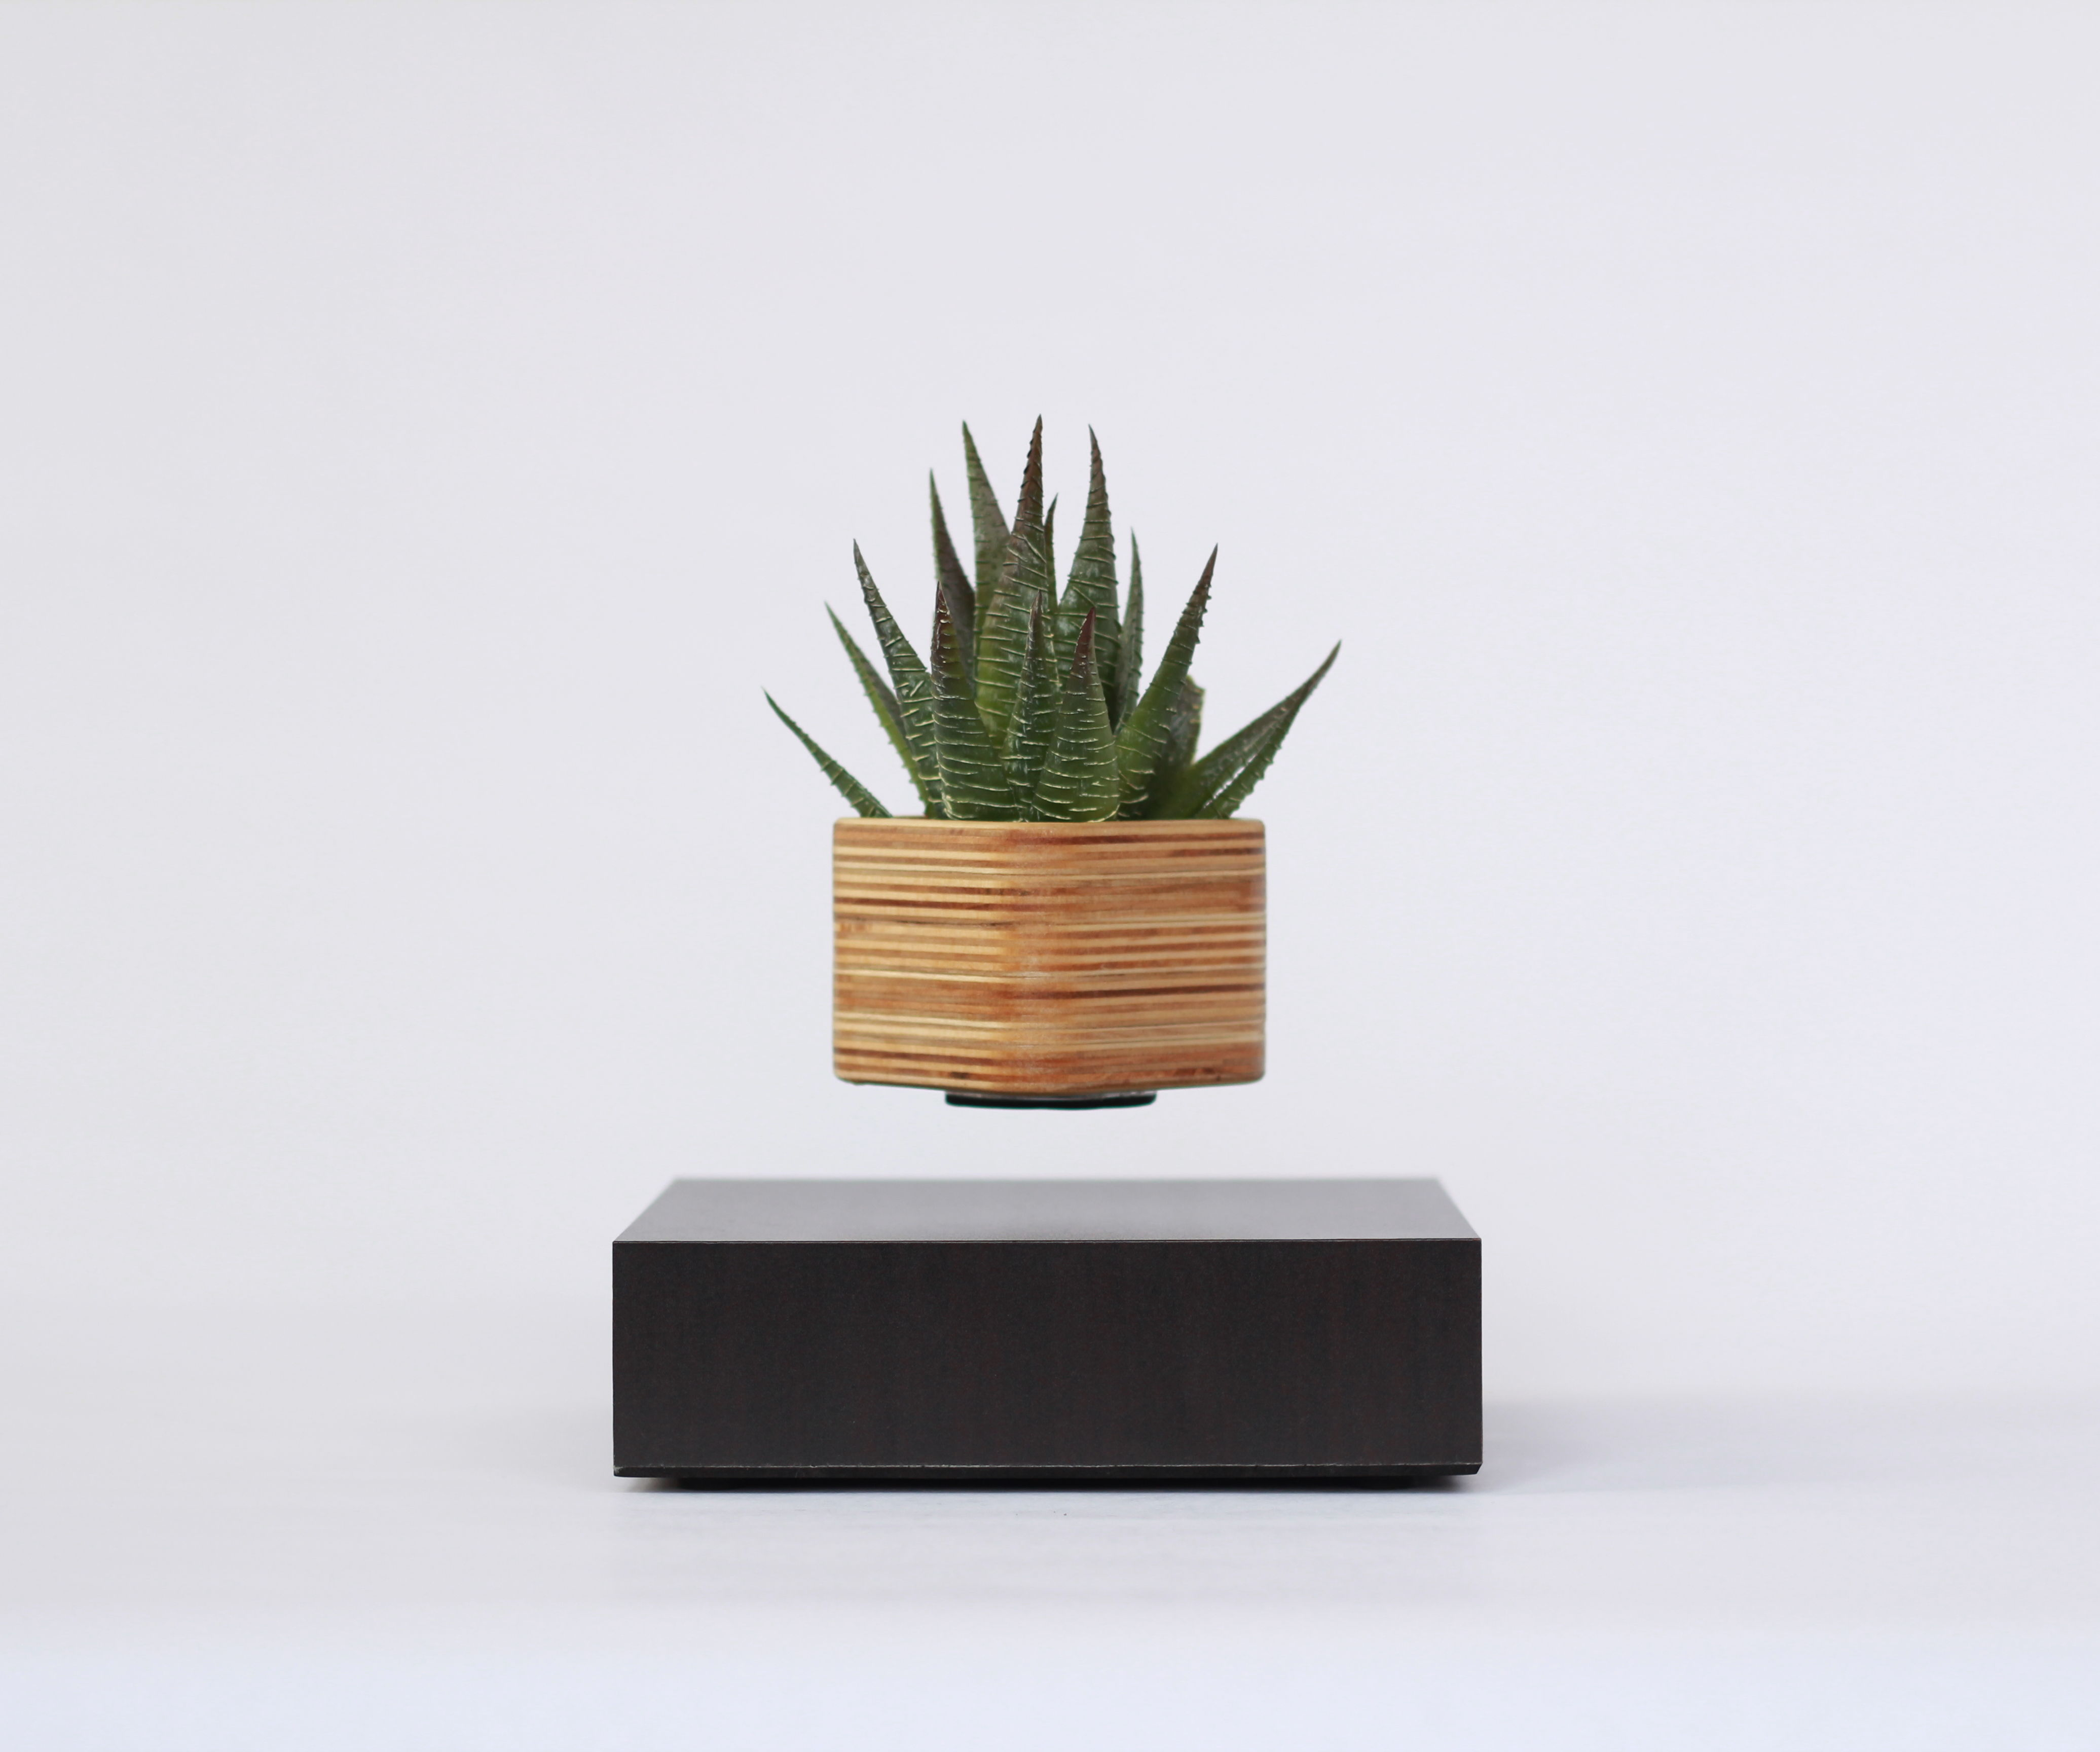 Building a Wood Planter for LEVdisplay